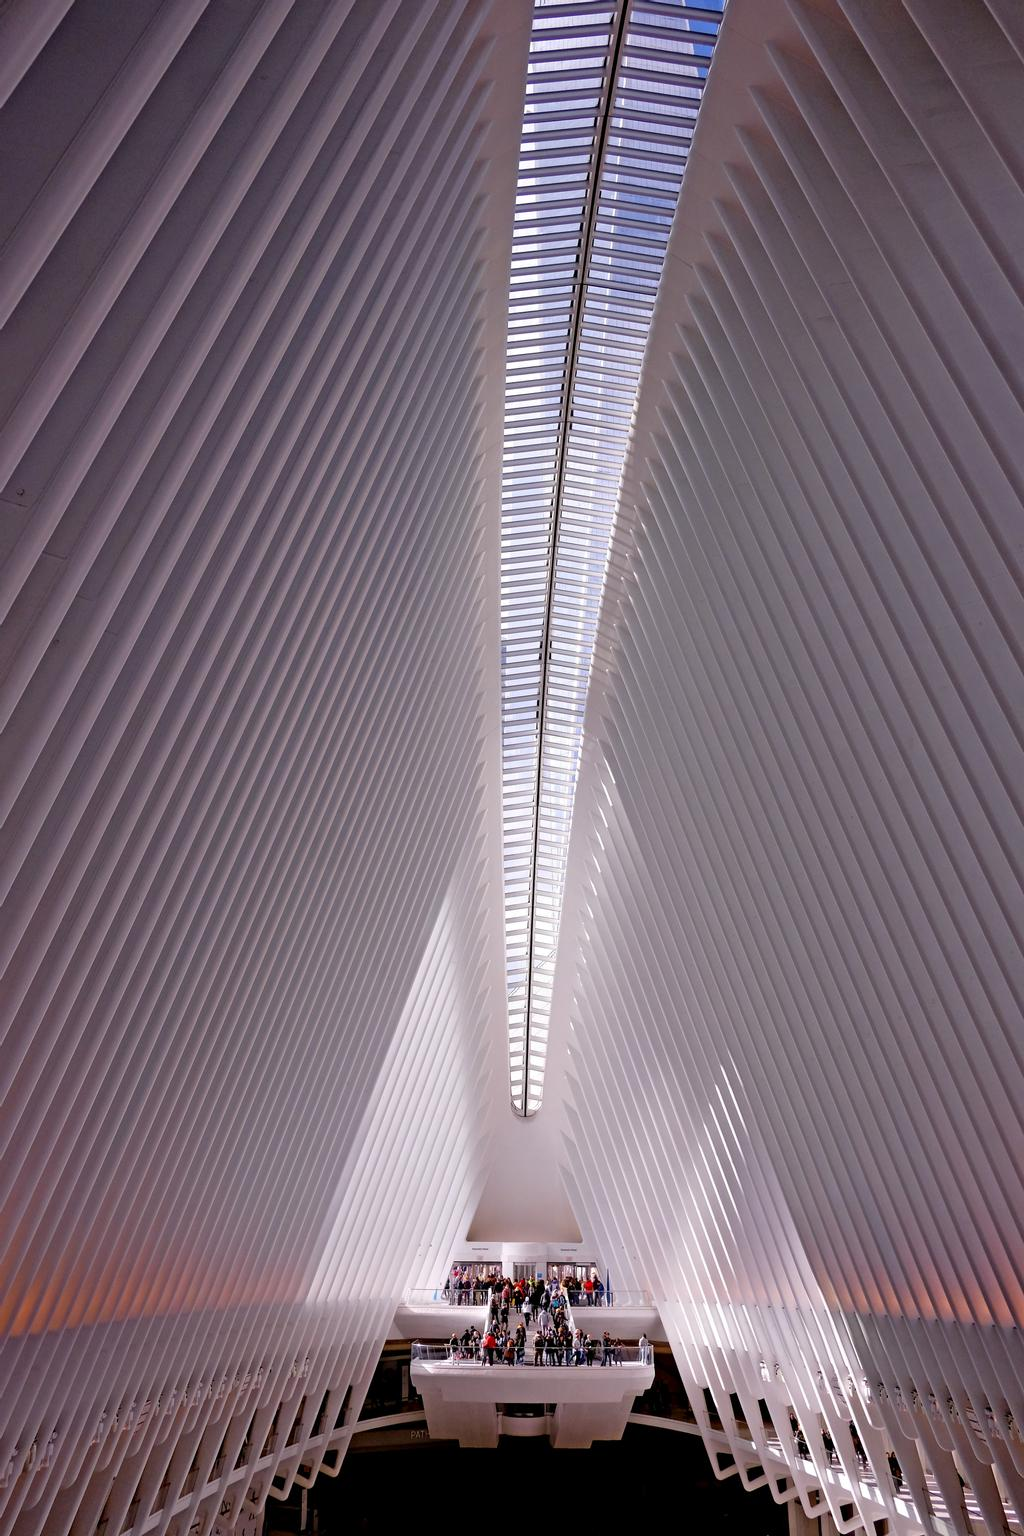 L'Oculus, le nouveau terminal du World Trade Center à New York